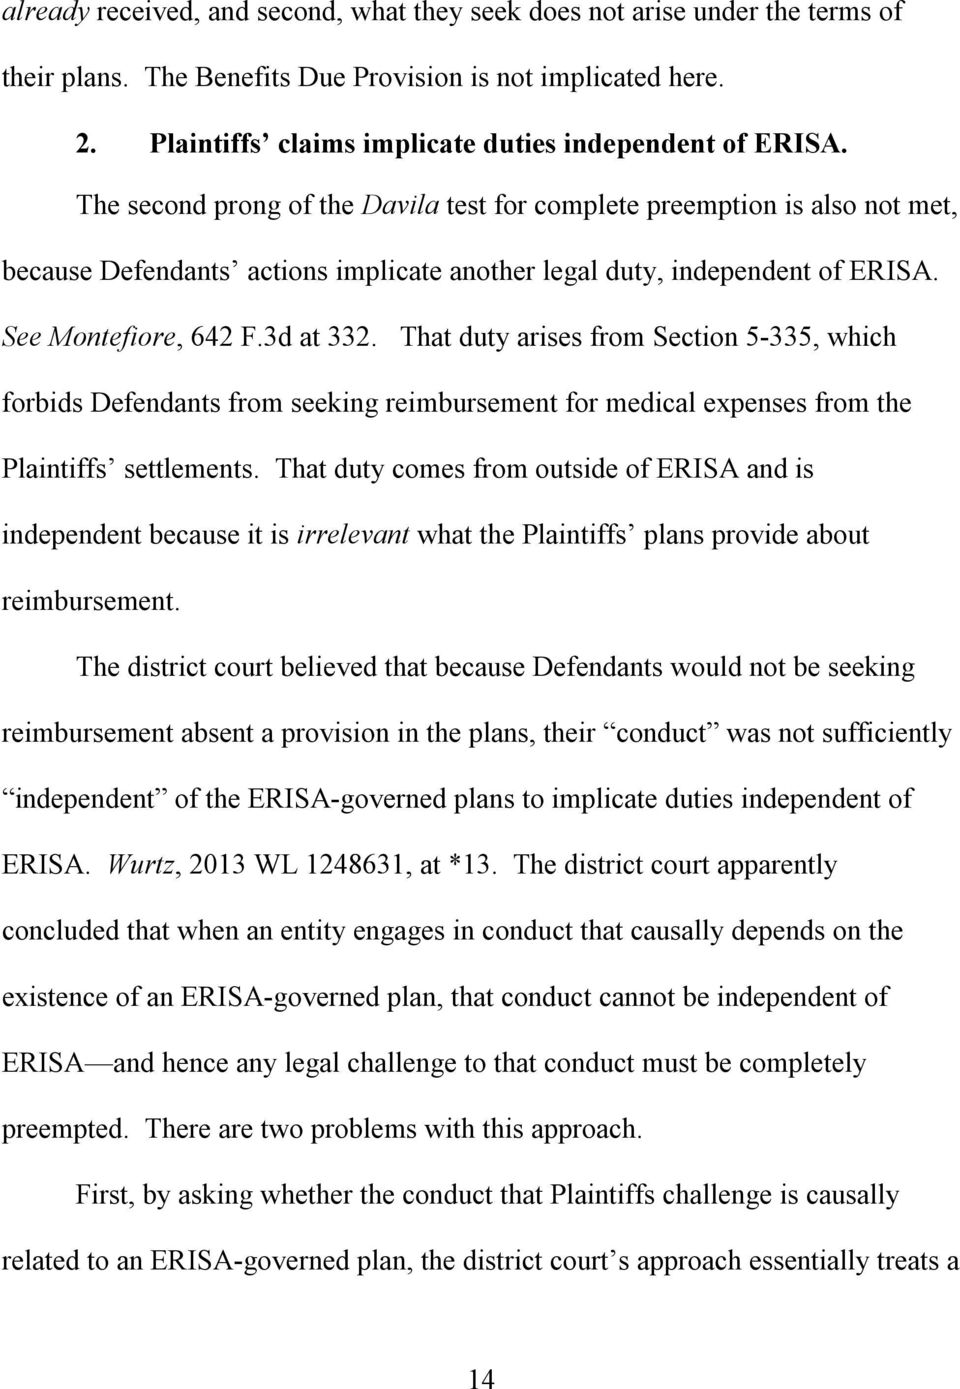 The second prong of the Davila test for complete preemption is also not met, because Defendants actions implicate another legal duty, independent of ERISA. See Montefiore, 642 F.3d at 332.